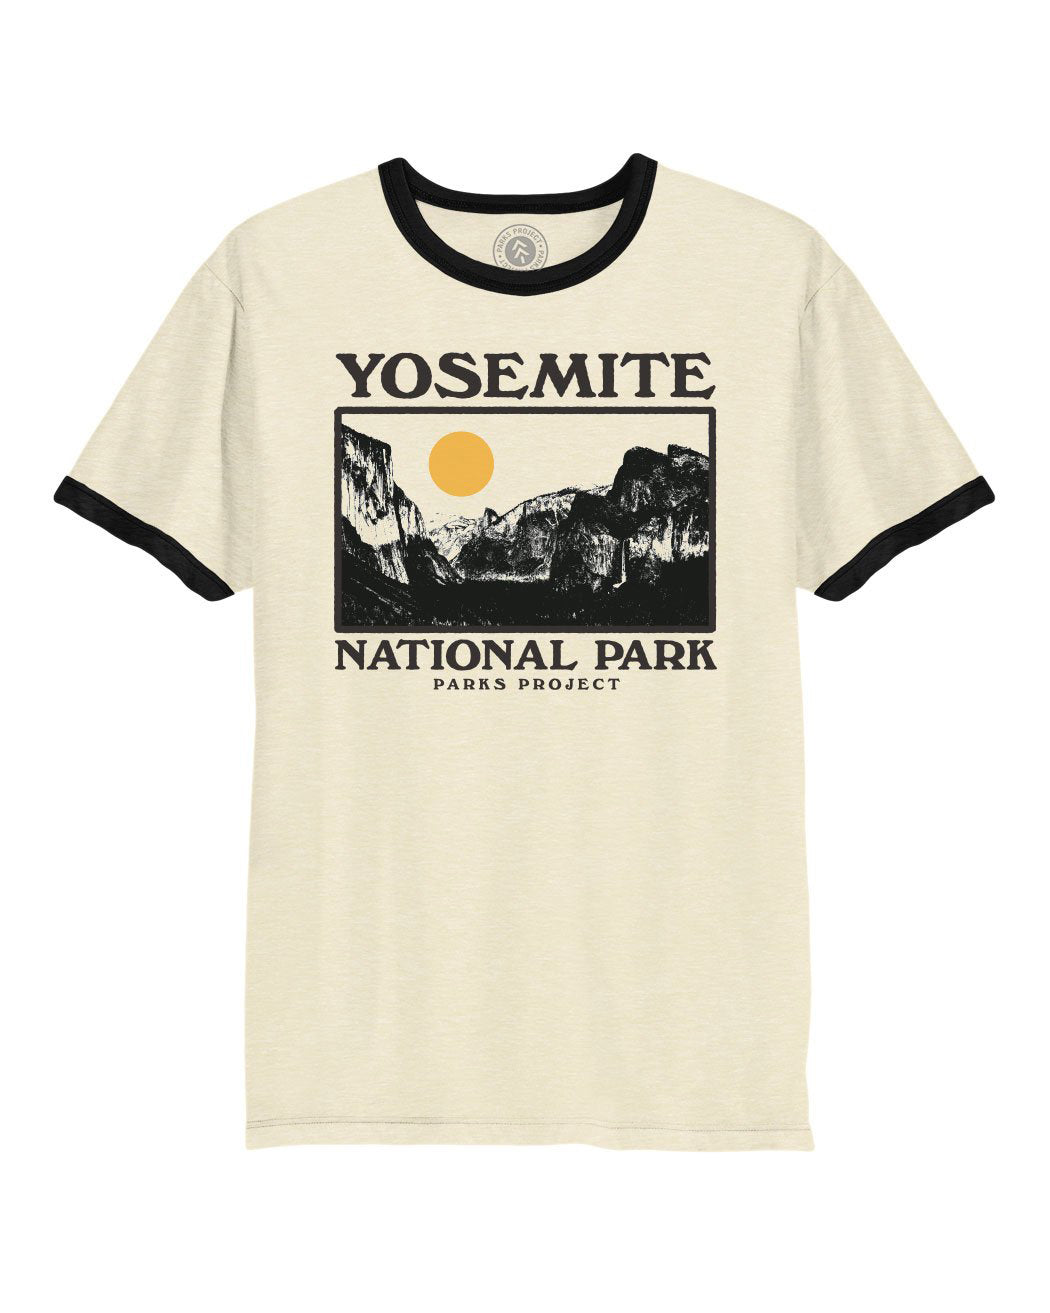 Yosemite Photo Ringer Tee | Parks Project | Vintage National Park Ringer Shirts